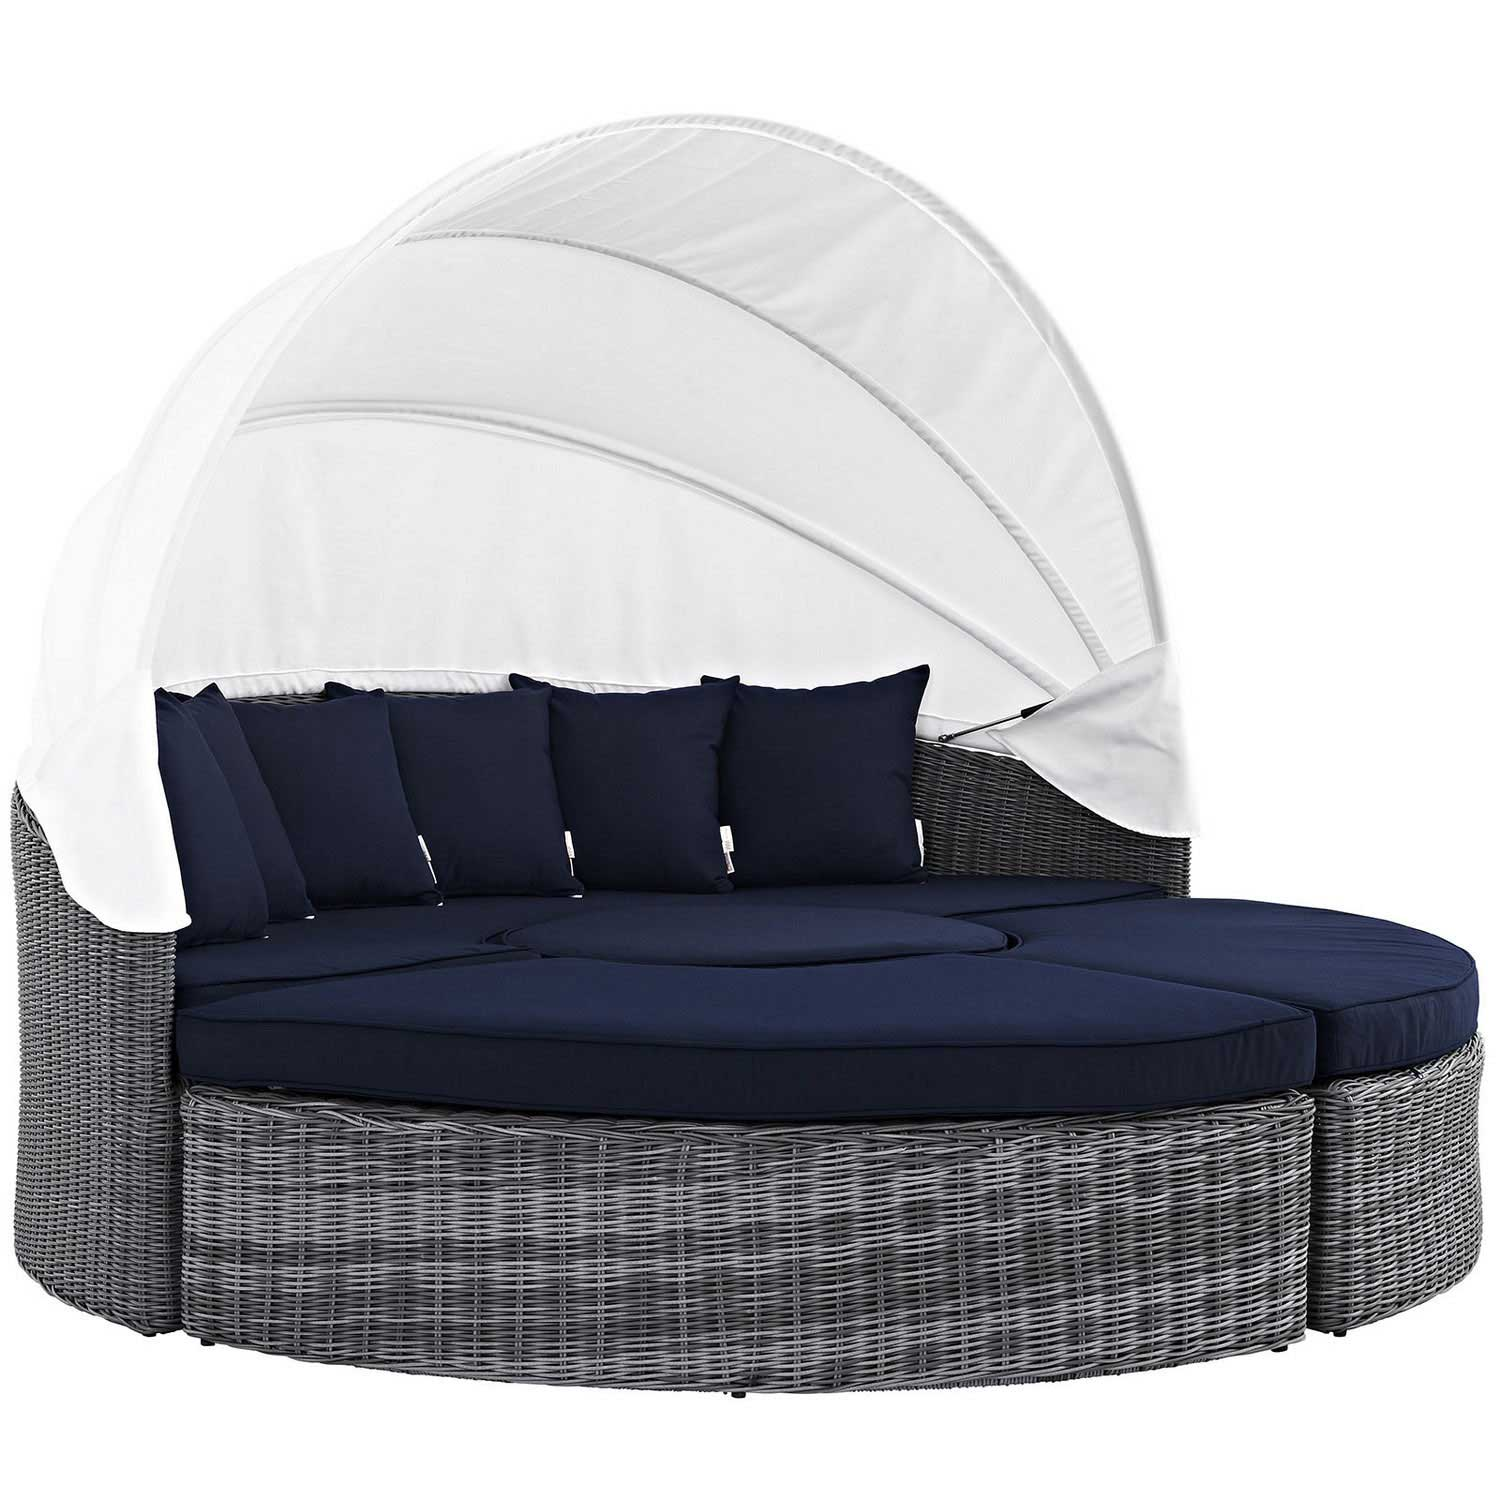 Modway Summon Canopy Outdoor Patio Sunbrella Daybed - Canvas Navy